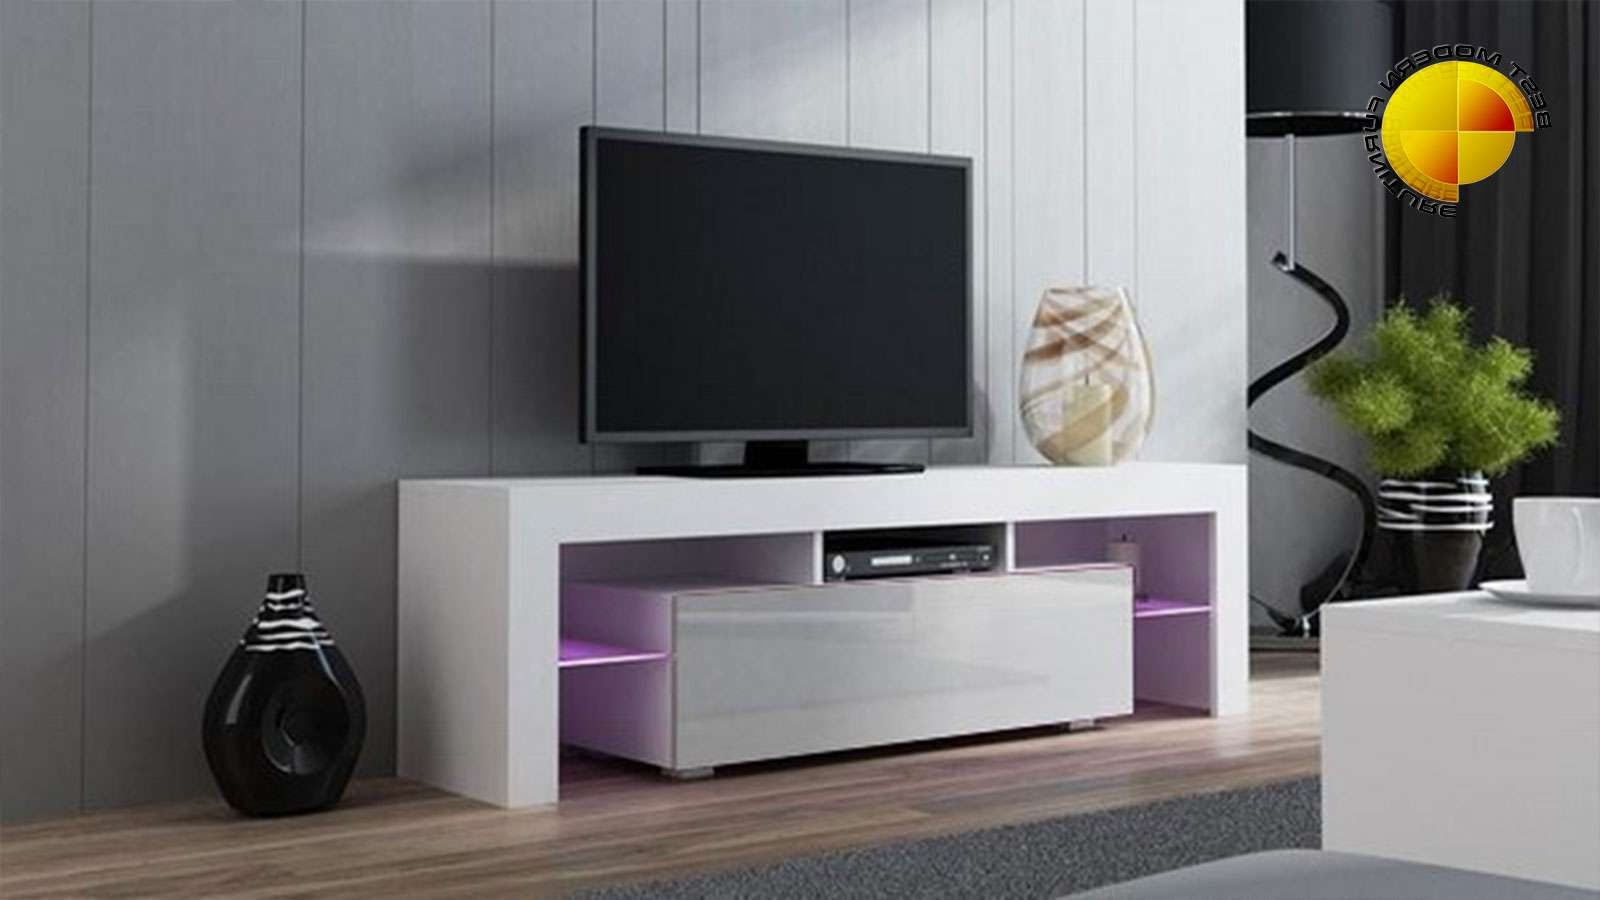 Modern Tv Stand 160cm High Gloss Cabinet Rgb Led Lights White Unit Pertaining To White Gloss Tv Stands (View 10 of 15)